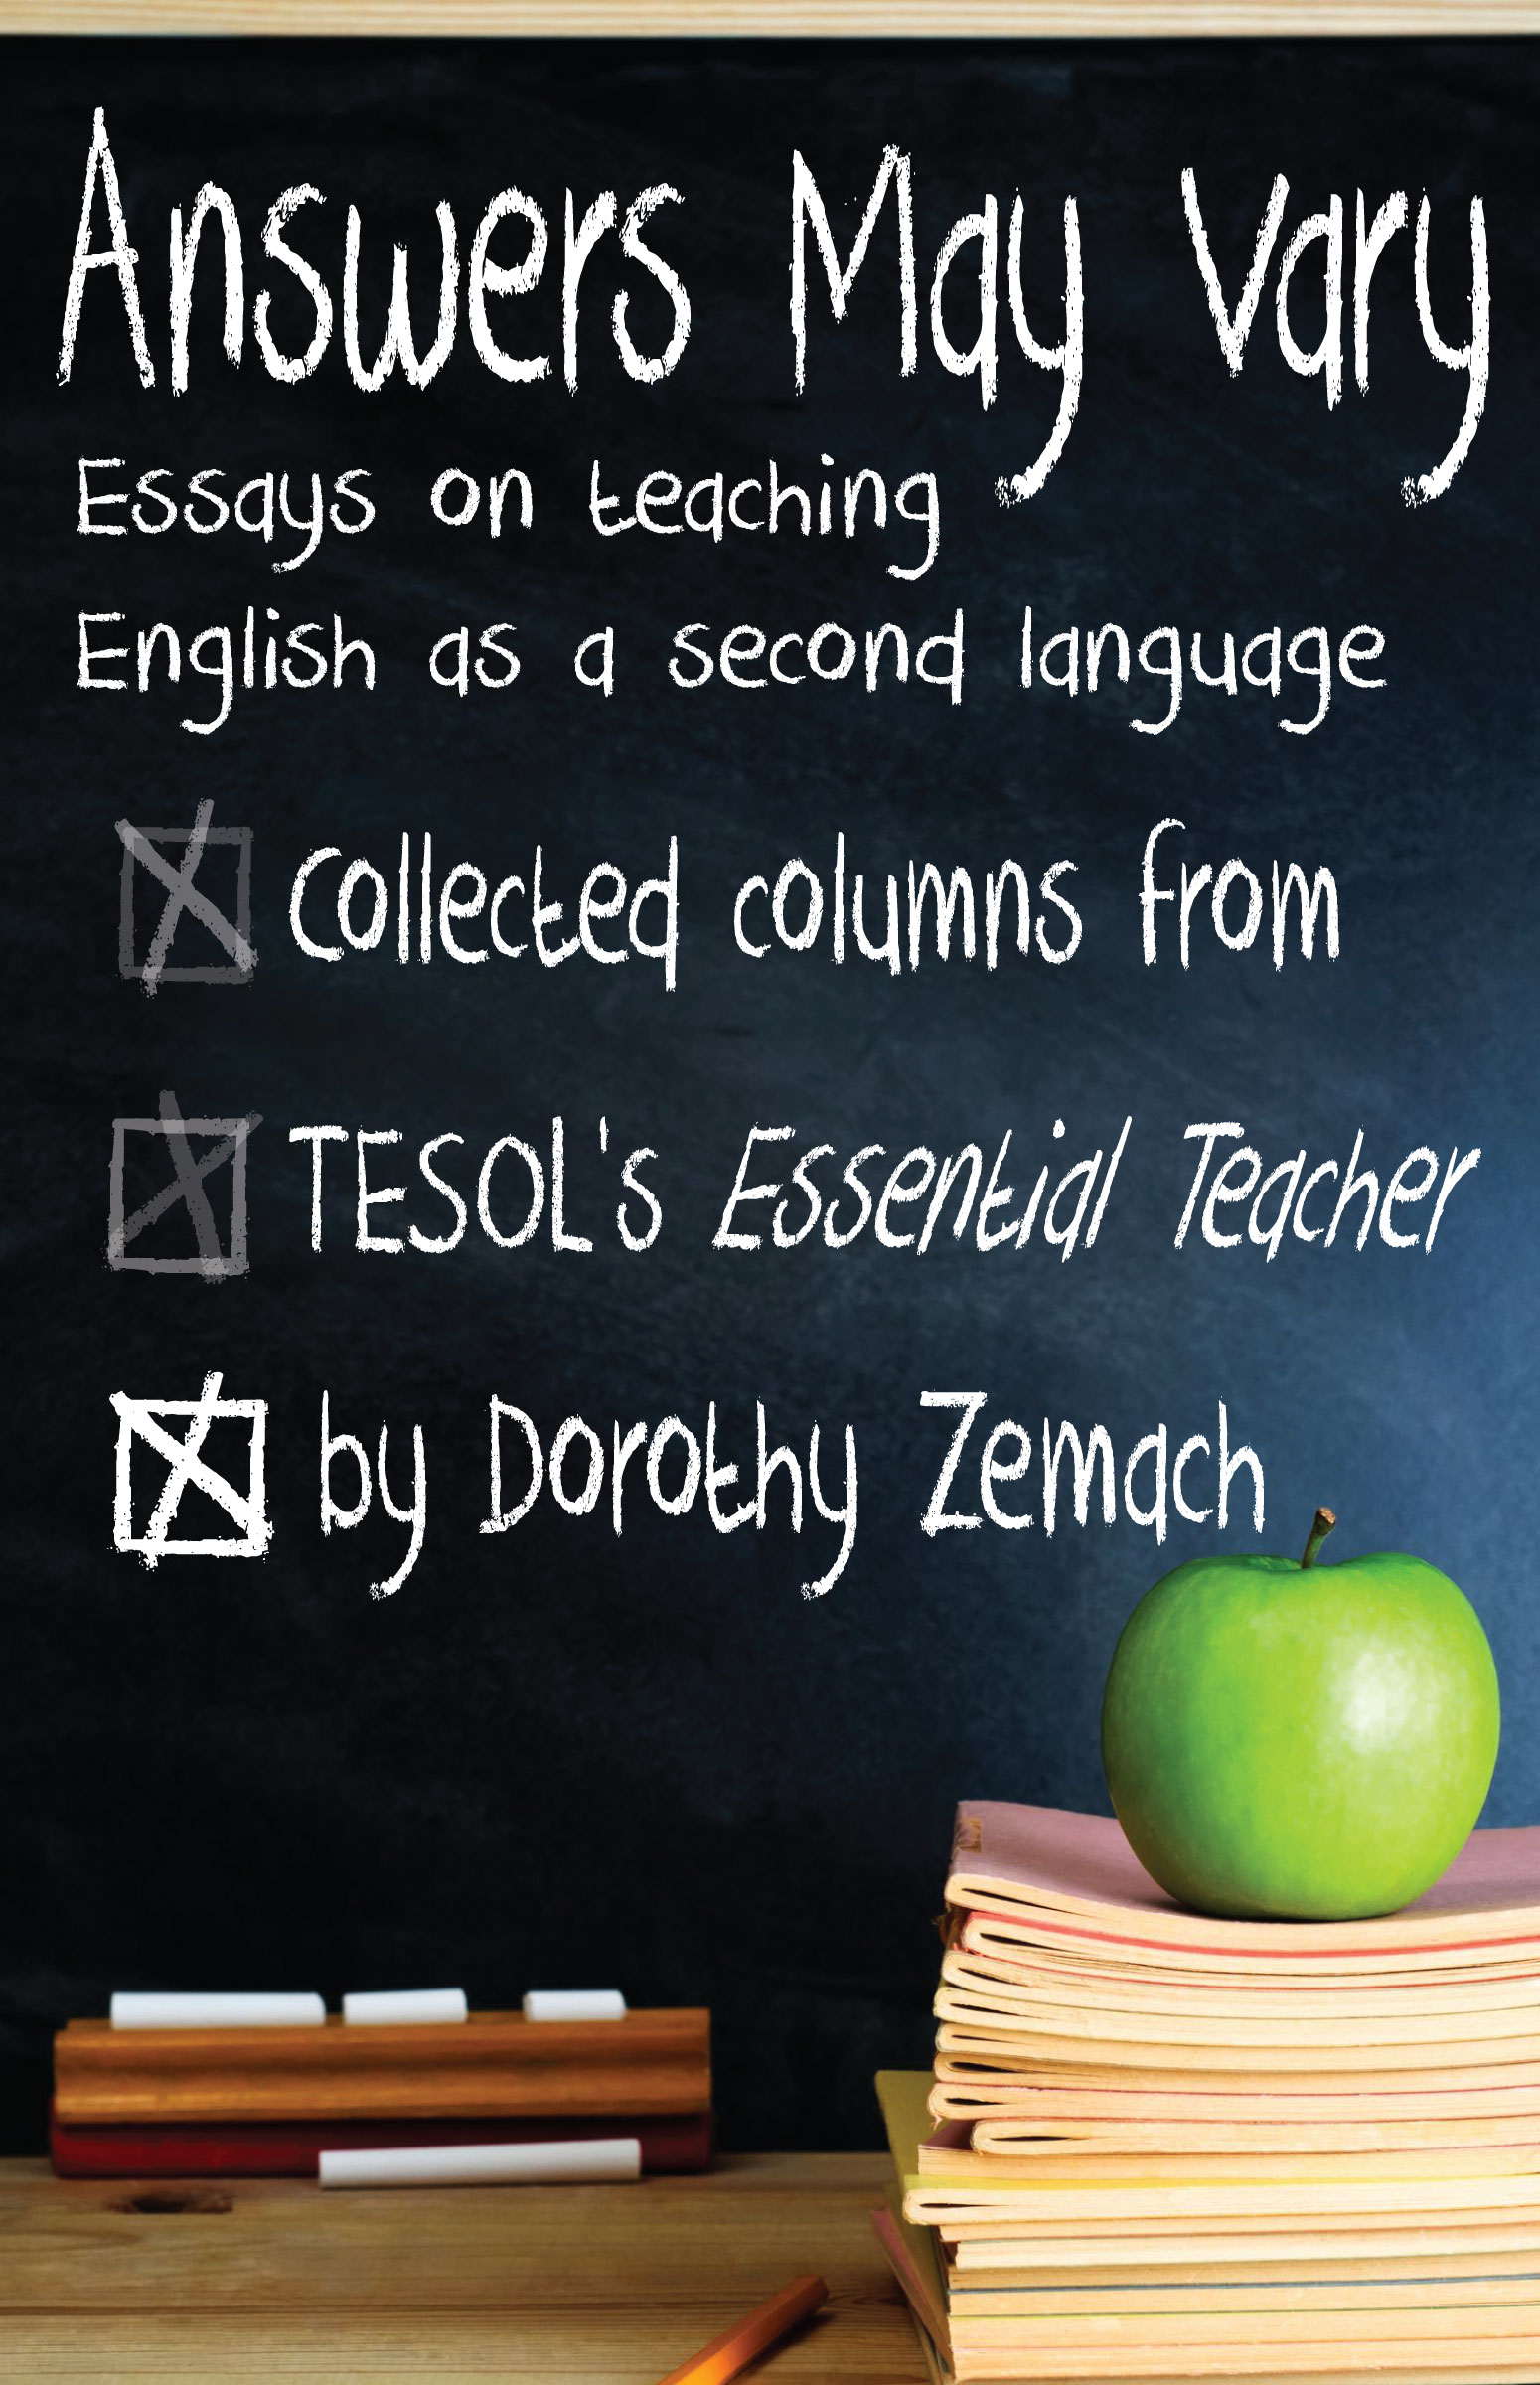 essays teaching english second language Teaching english as a second language teaching english as a second language (tesl) refers to teaching english to students whose first language is not english, usually offered in a region where english is the dominant language and natural english language immersion situations are apt to be plentiful.